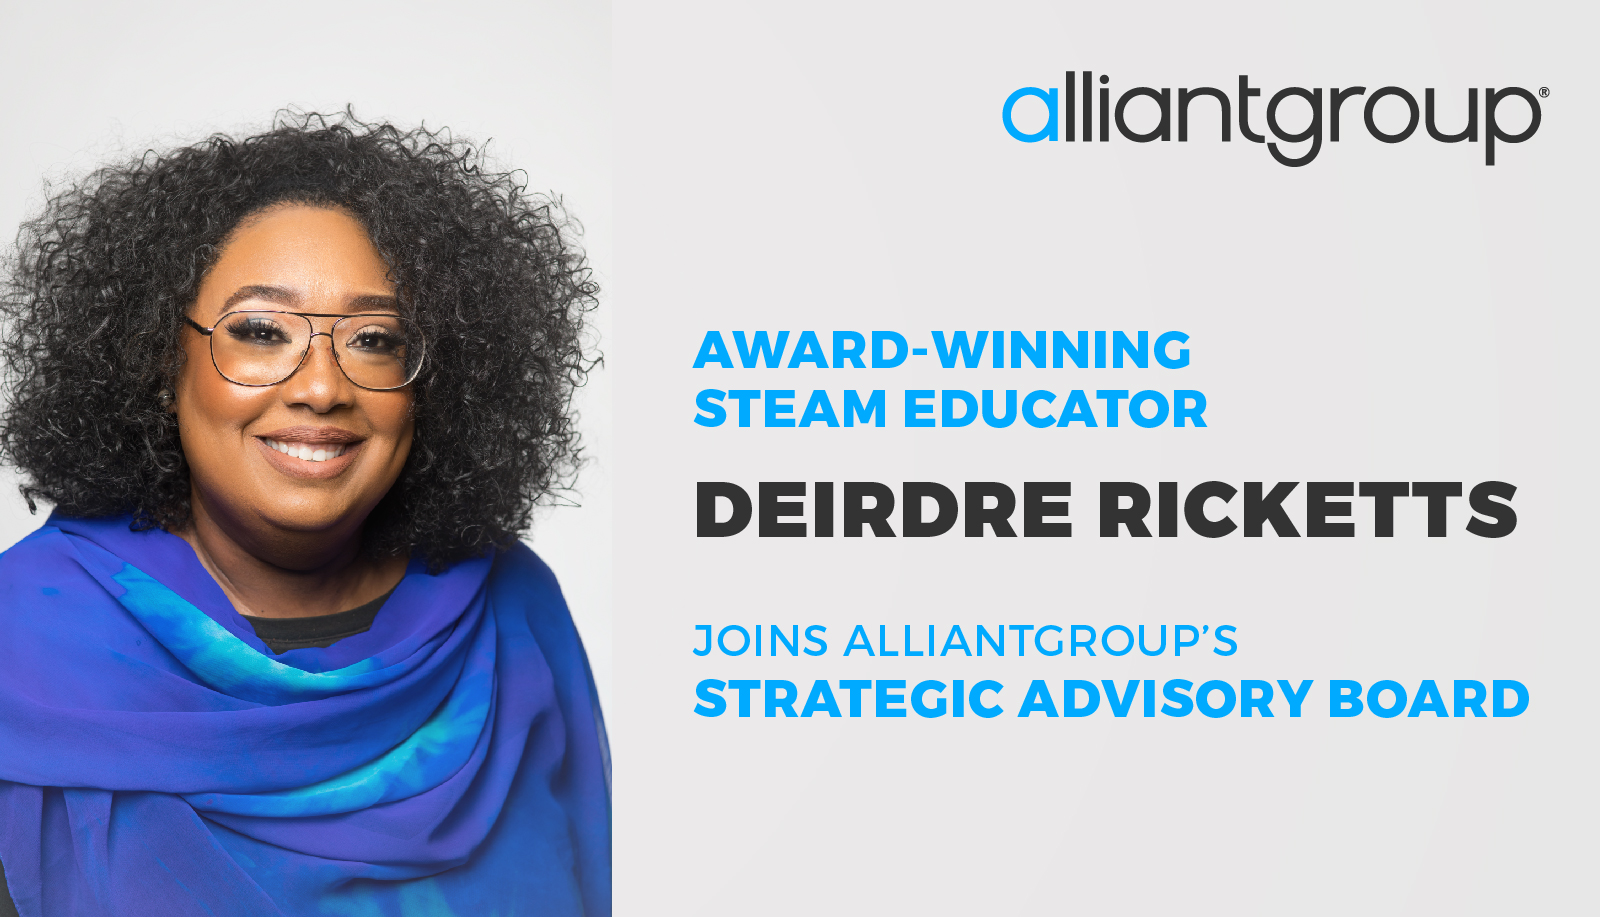 alliantgroup welcomes Deirdre Ricketts to their Strategic Advisory Board